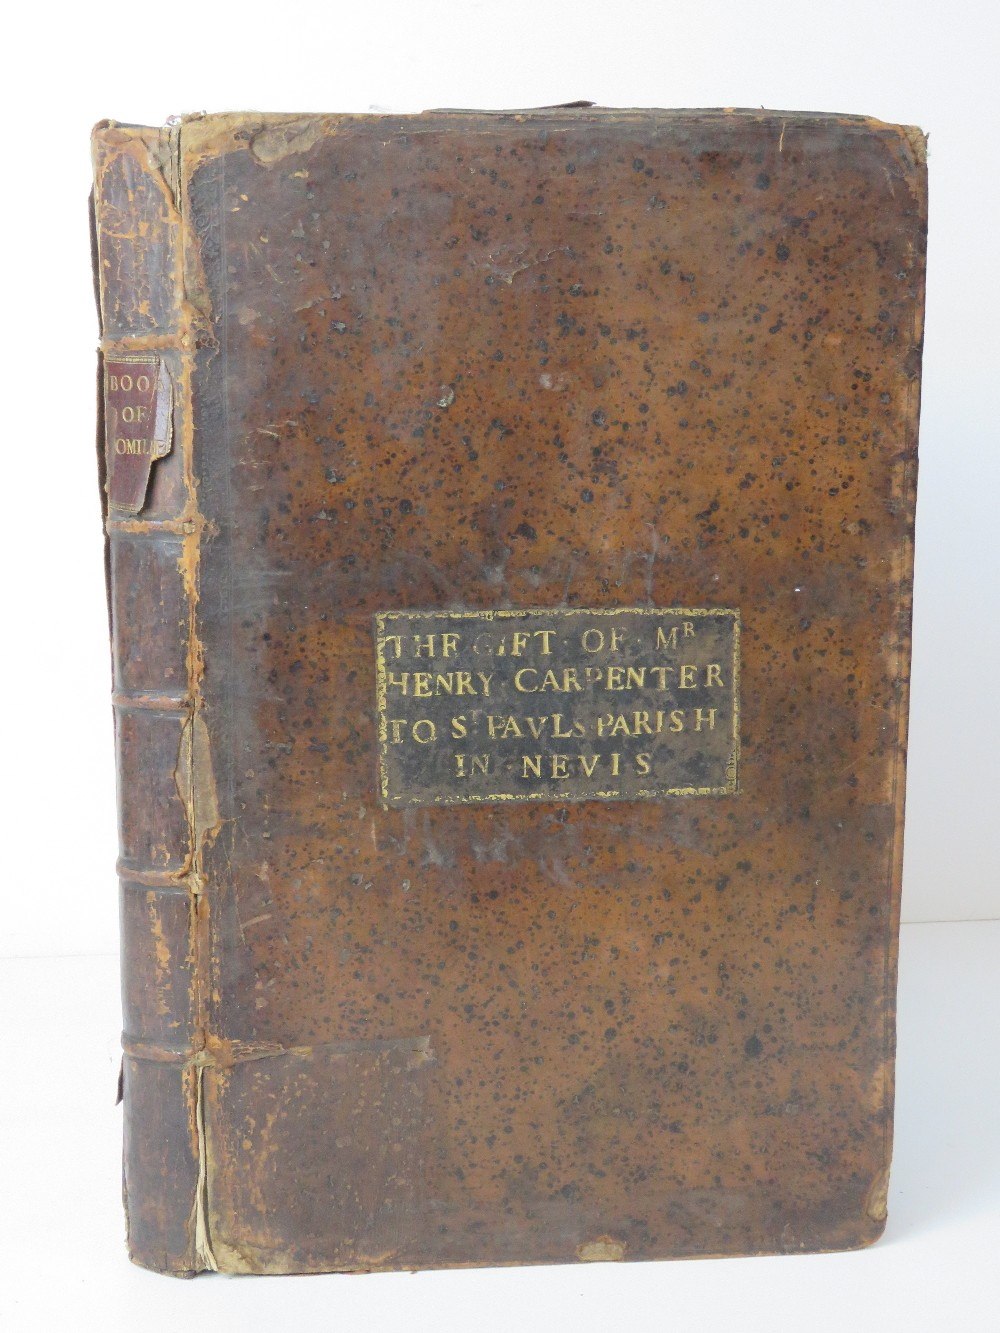 Book; Book of Homilies, certain sermons